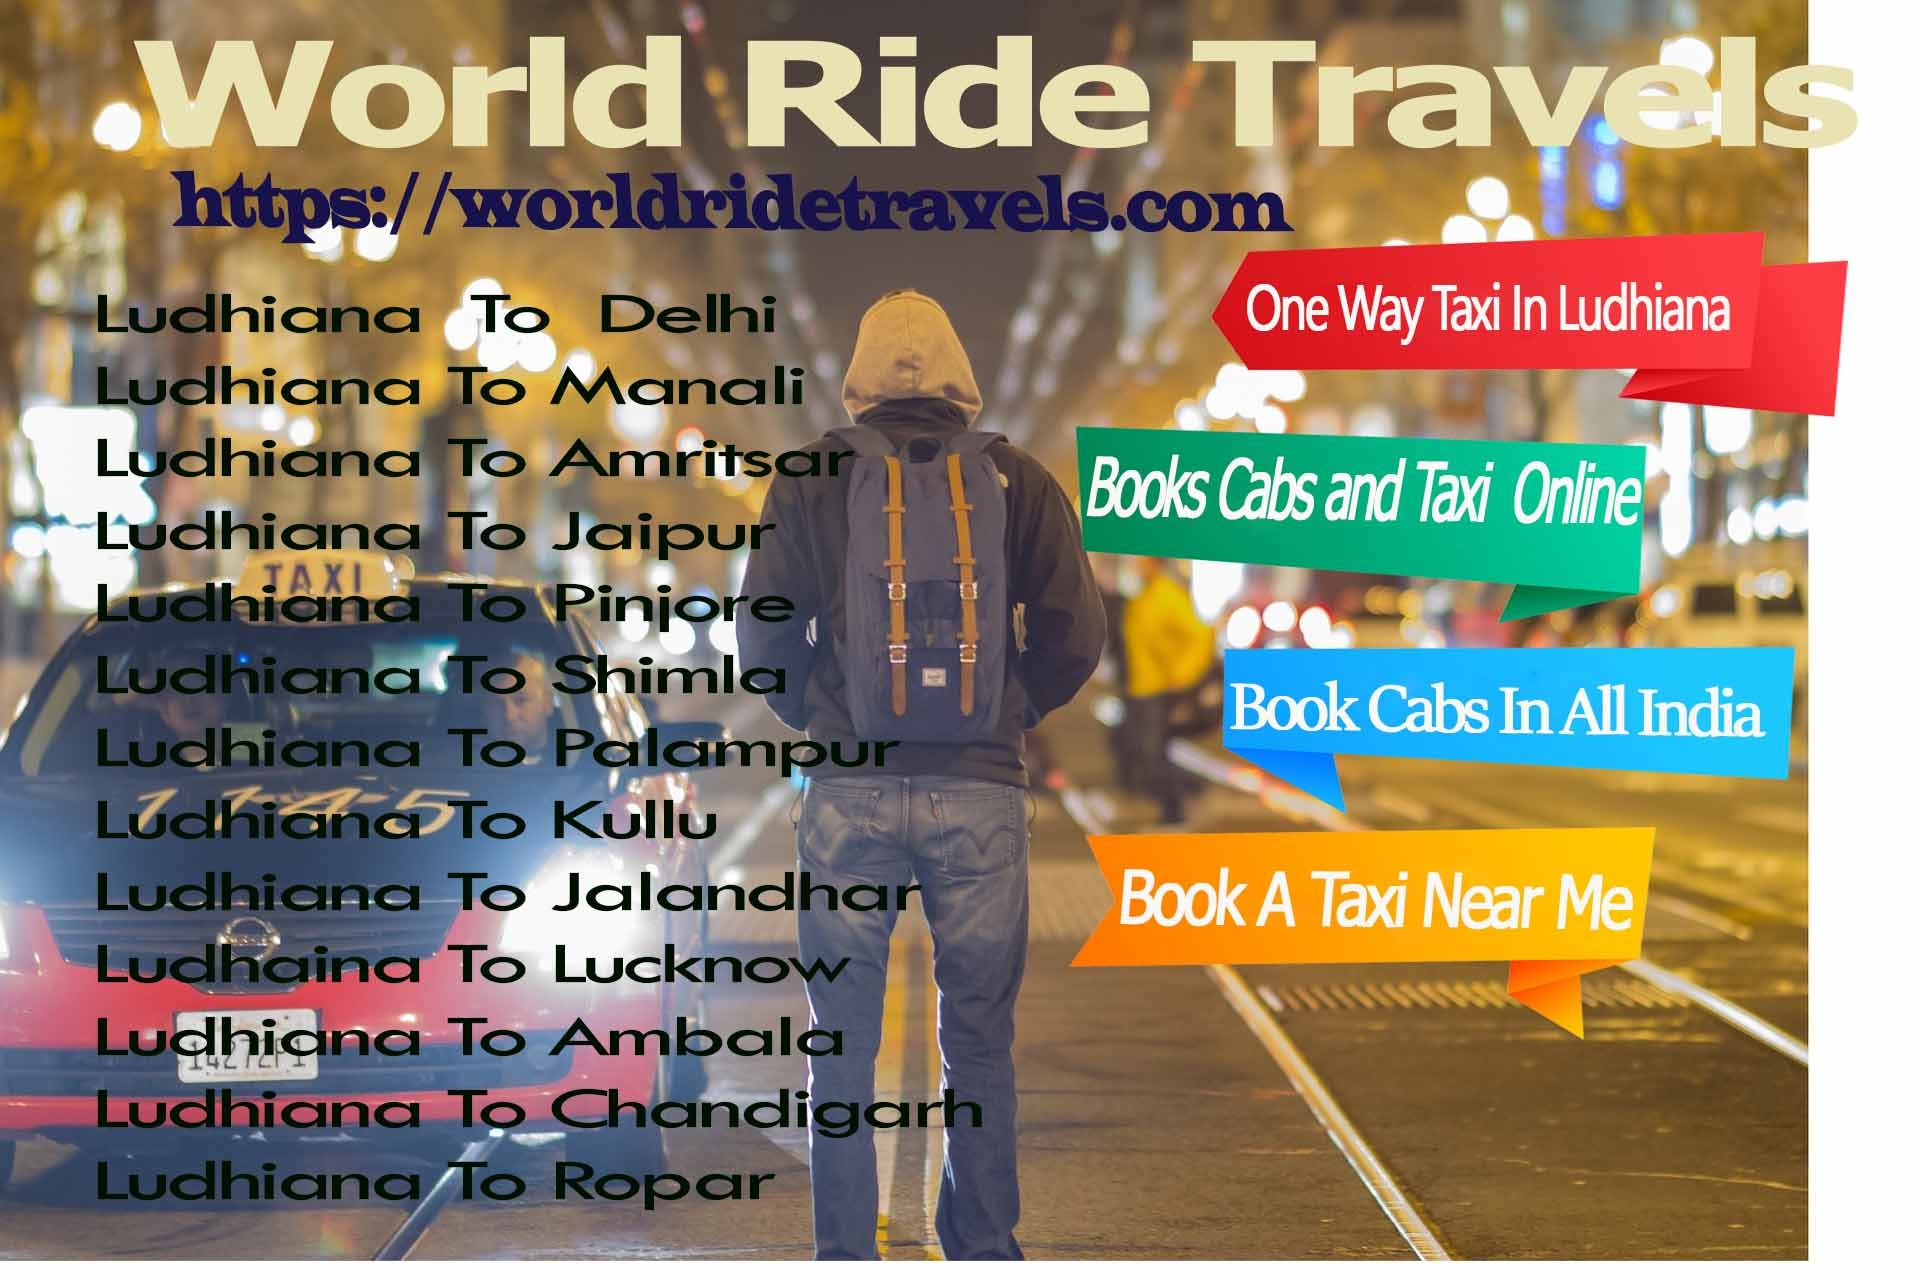 World Ride Travels